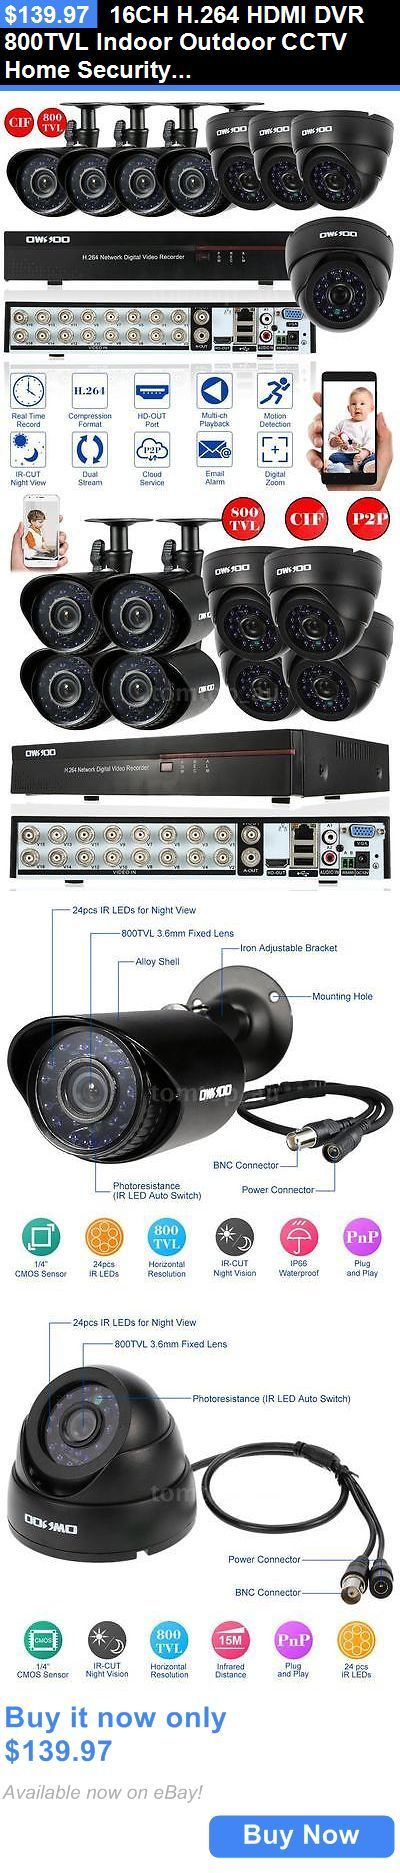 Do It Yourself Wireless Home Safety And Security Wireless Home Security Systems Wireless Home Security Security Cameras For Home